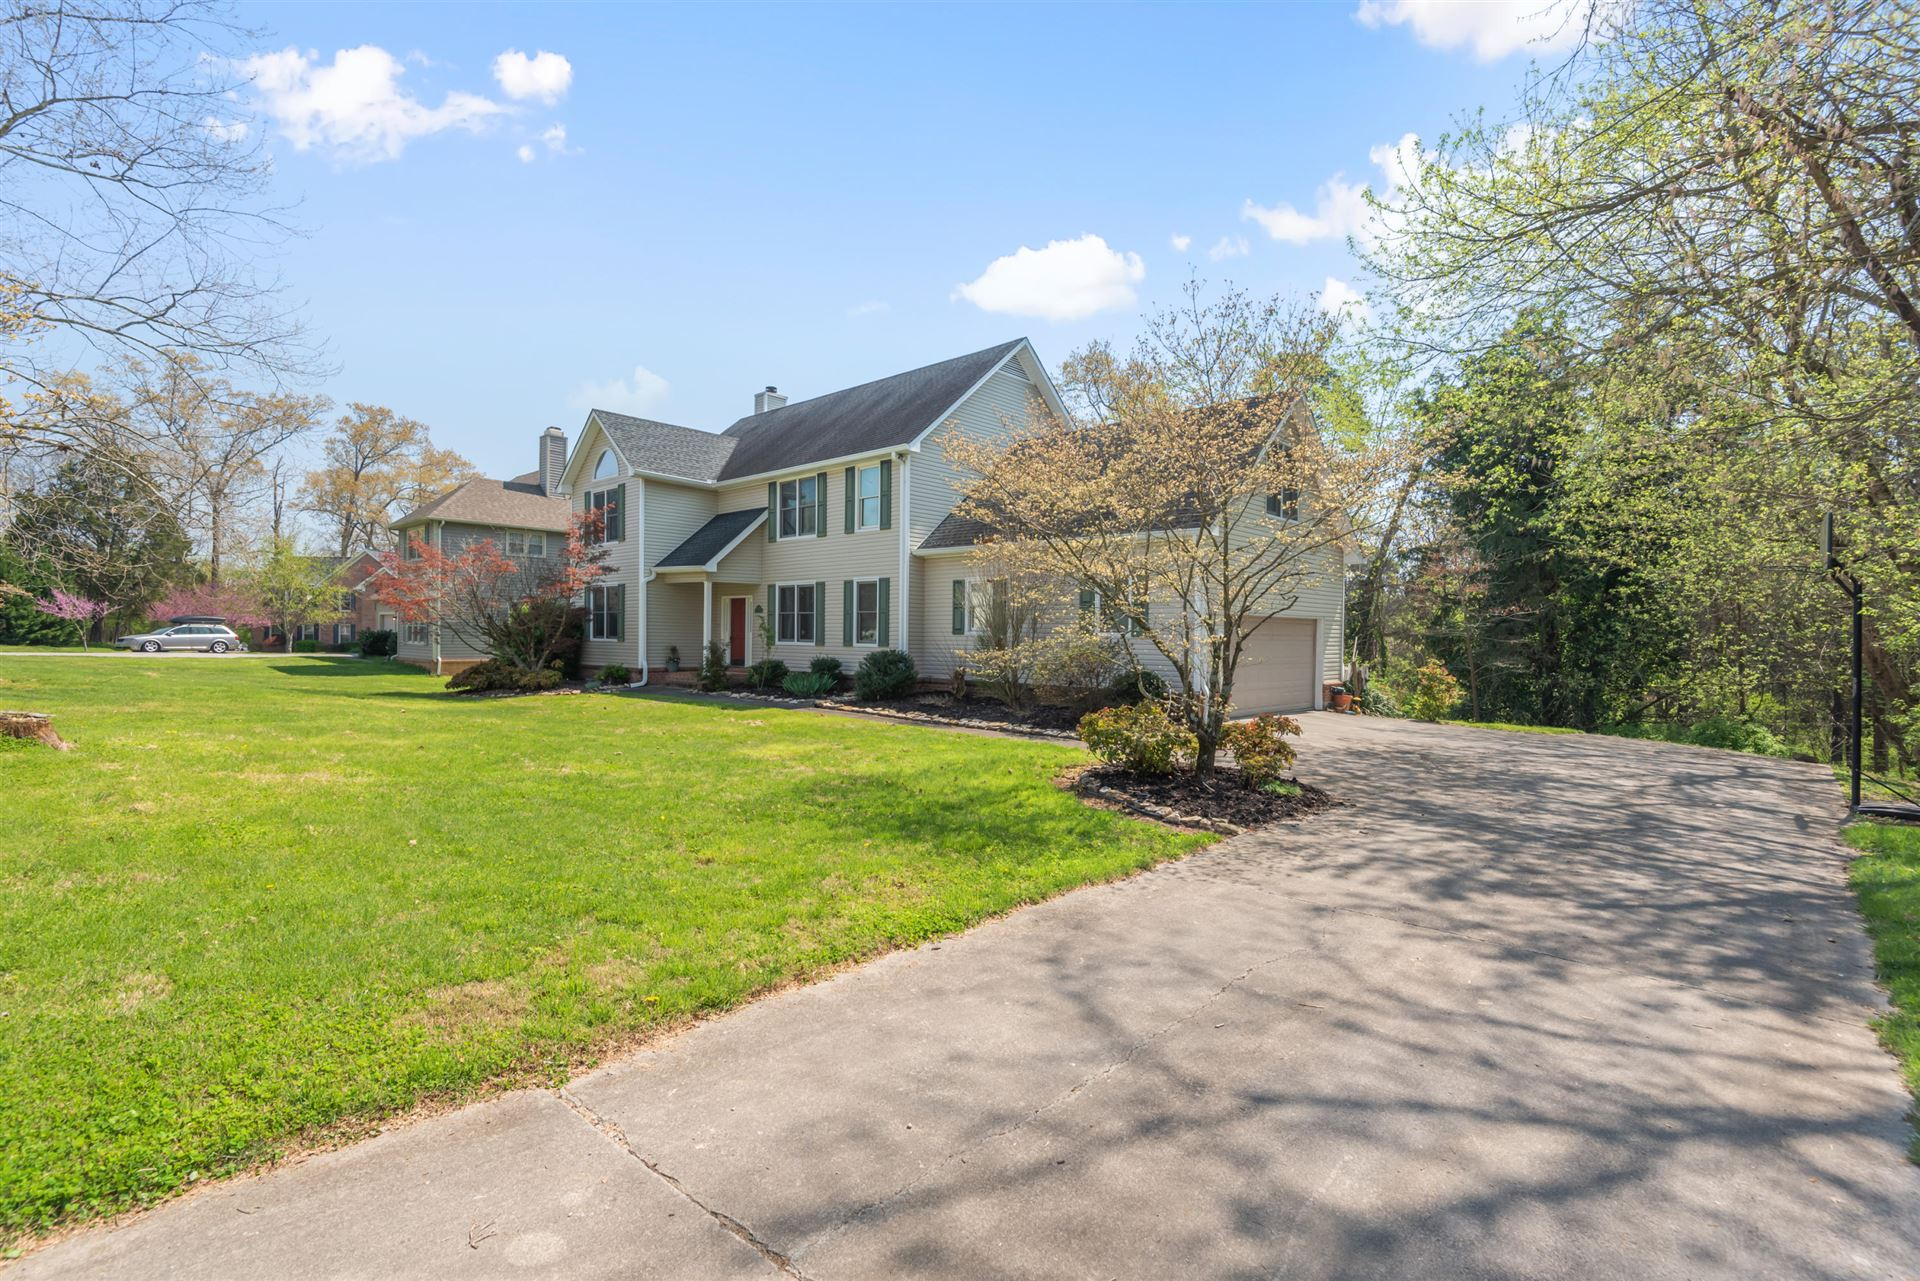 Photo of 12912 Sycamore Circle, Knoxville, TN 37934 (MLS # 1148971)